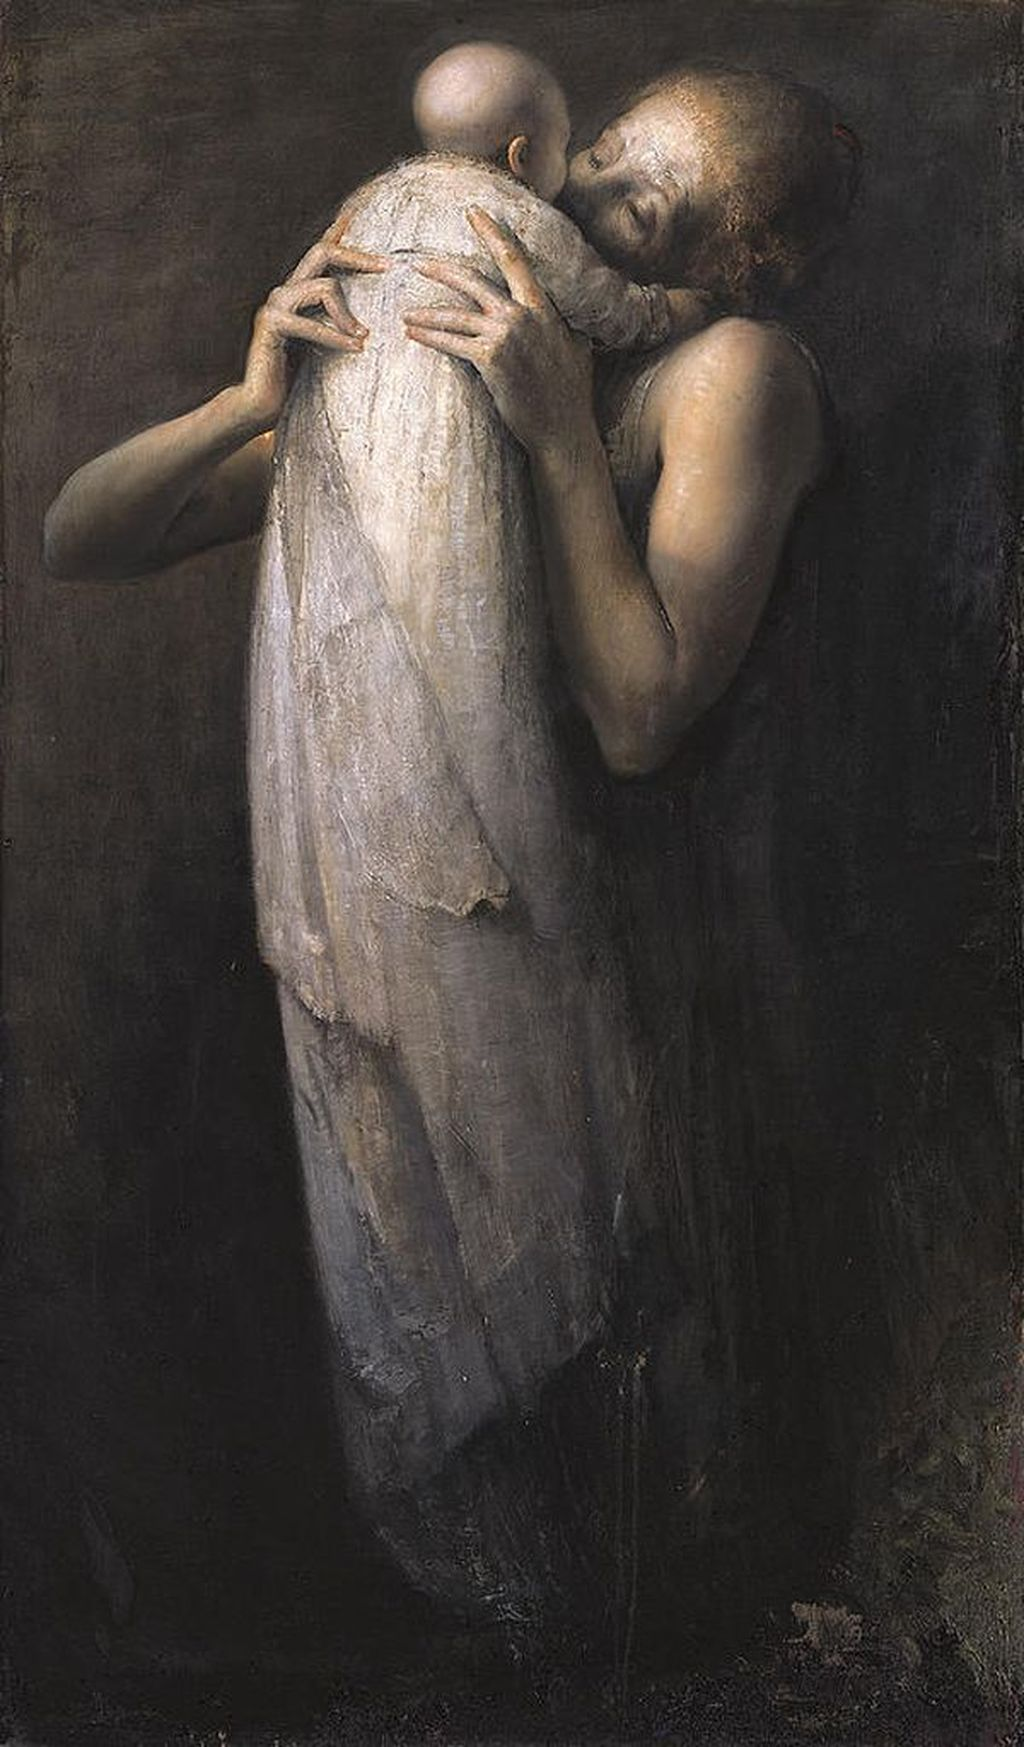 mother-and-child-odd-nerdrum-done-done